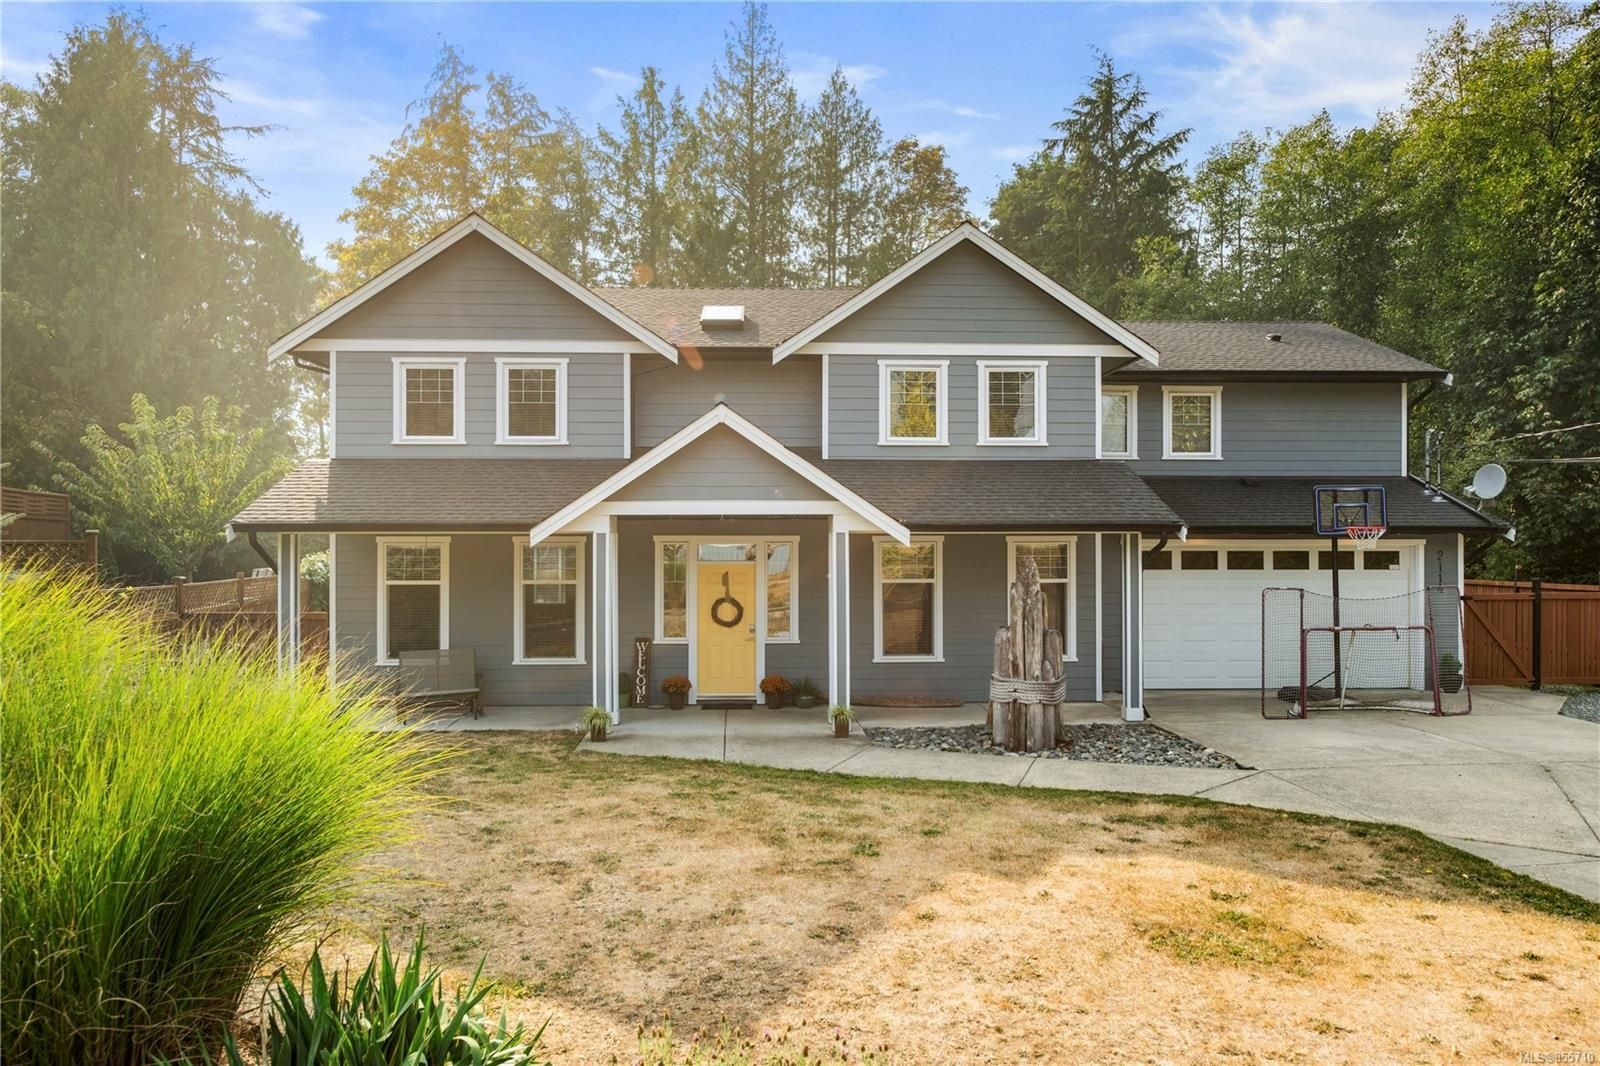 Main Photo: 2114 Winfield Dr in : Sk Sooke Vill Core House for sale (Sooke)  : MLS®# 855710